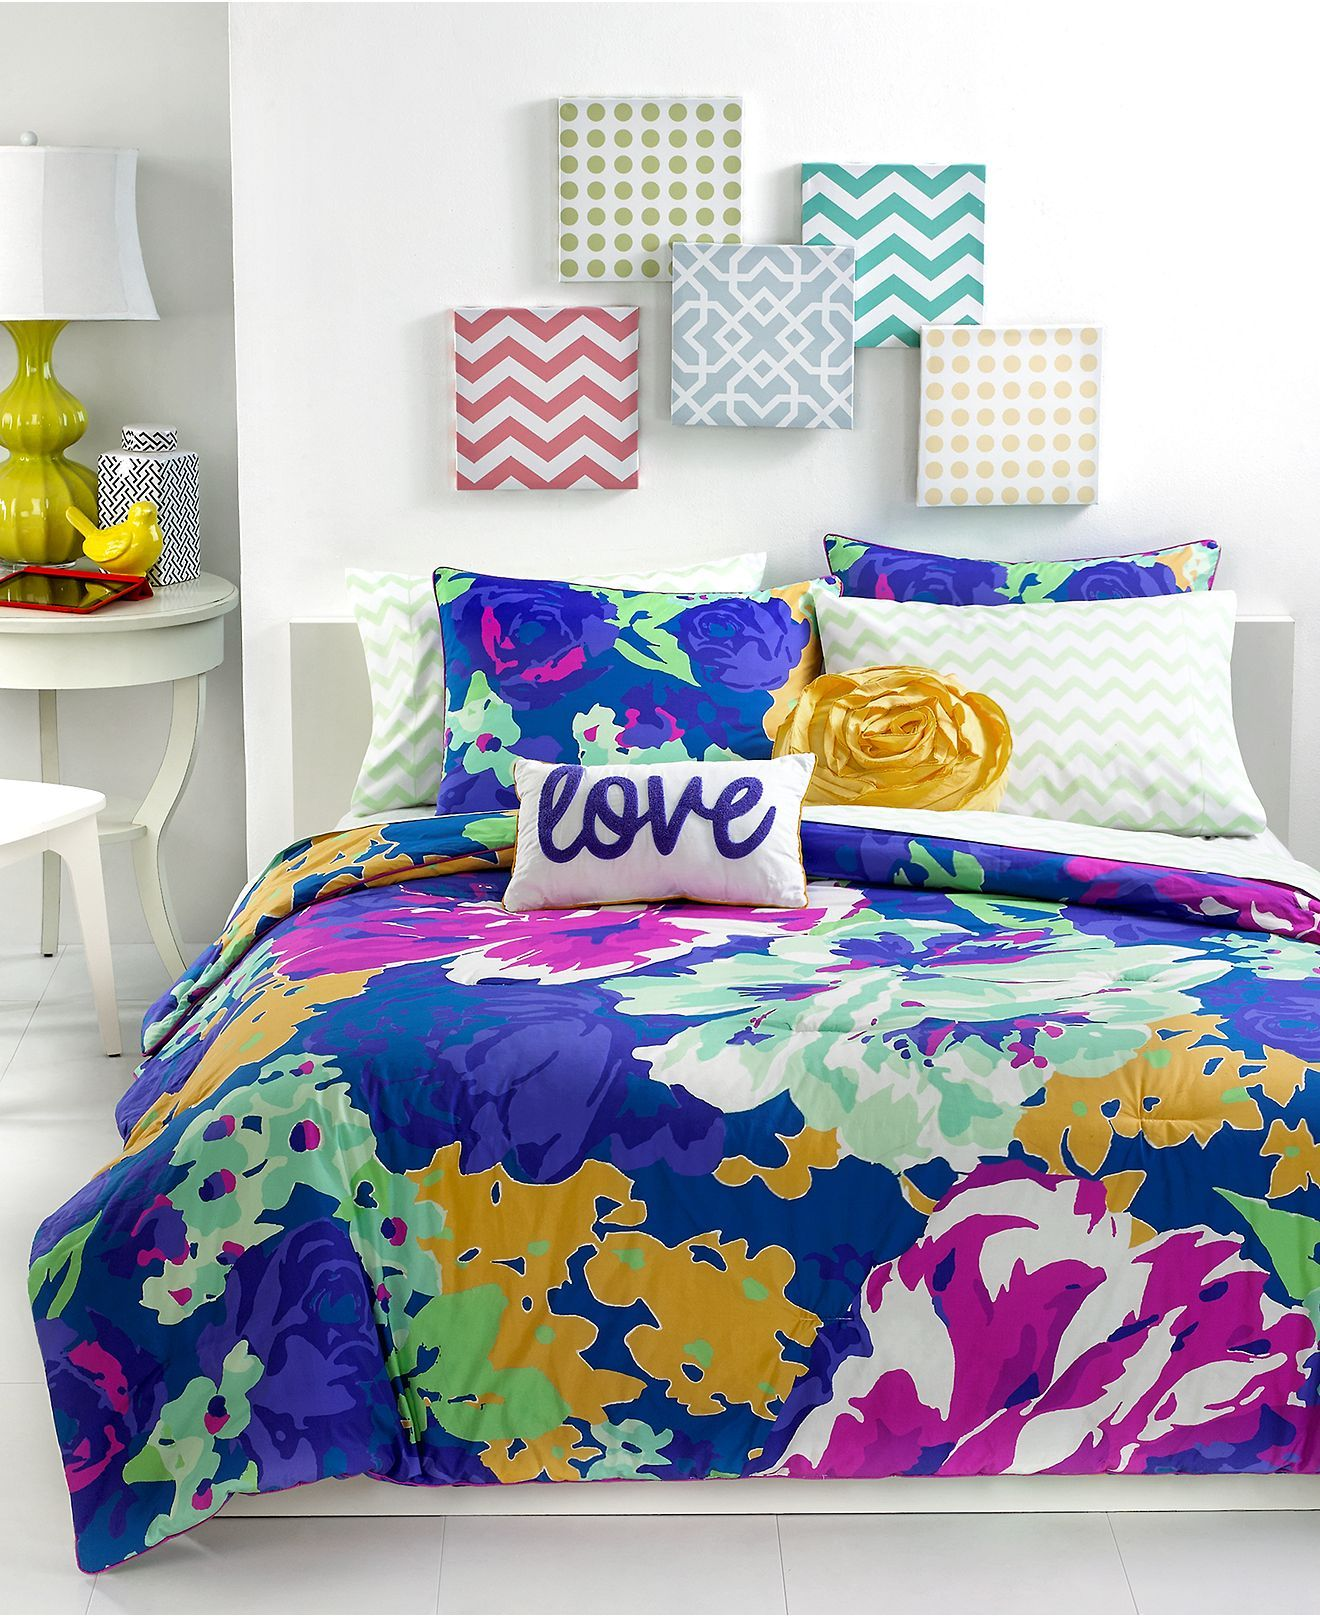 size covers bedroom sets and queen full comforter cover duvet comforters of quilt sheets pretty bed bedding cozy cute cotton for room colorful